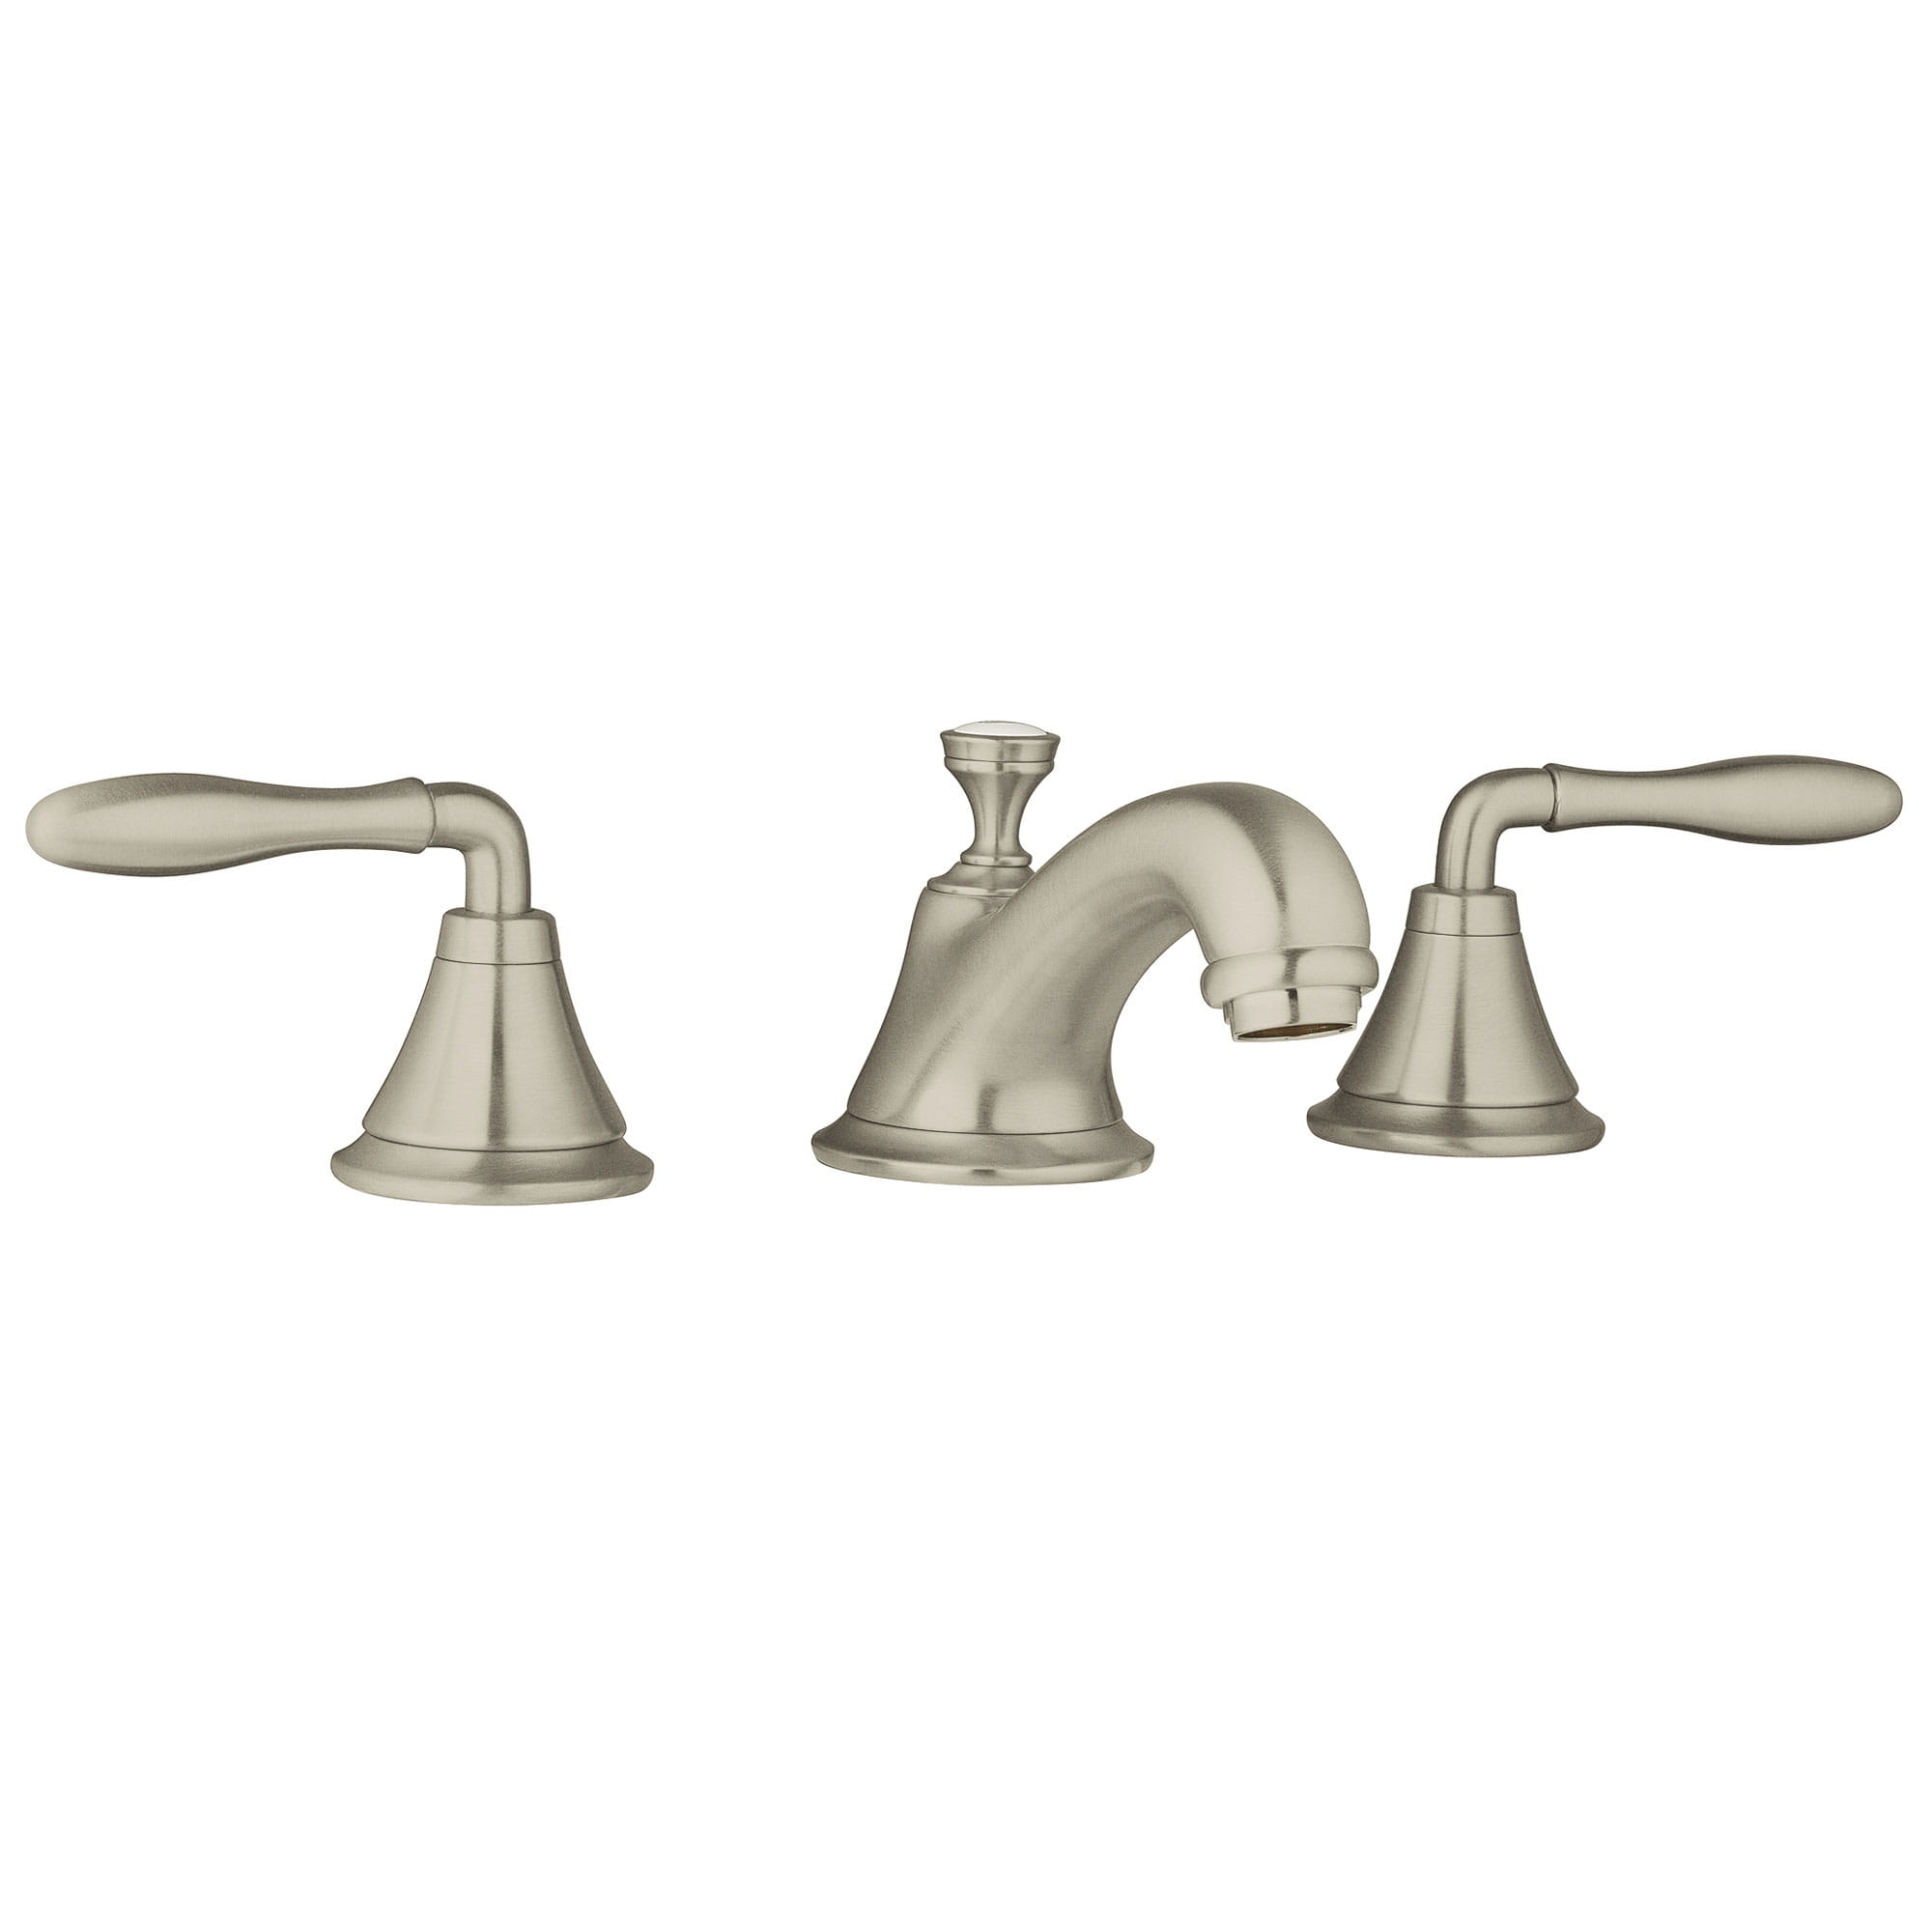 Lavatory Wideset 12 gpm GROHE BRUSHED NICKEL